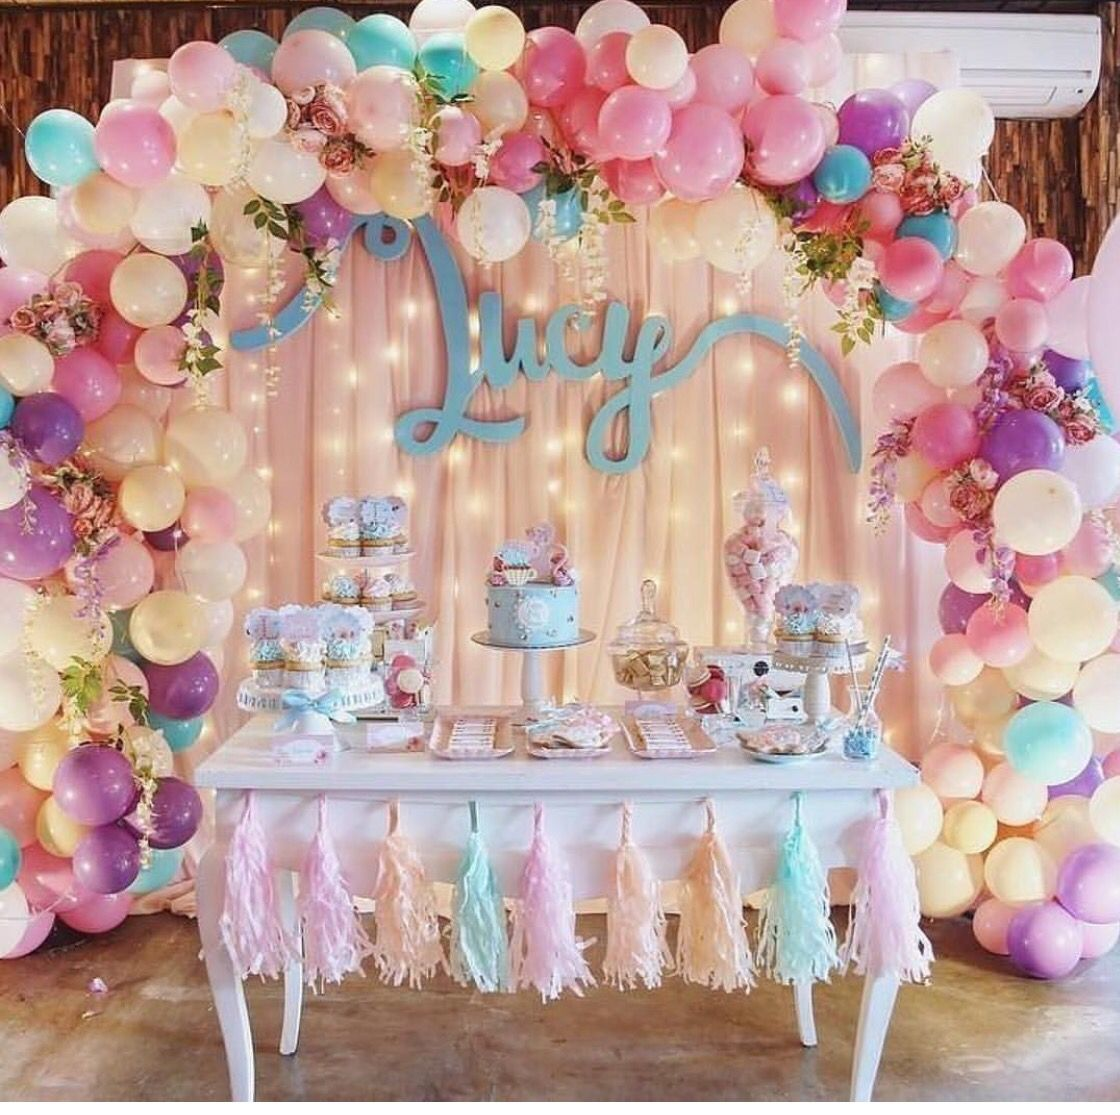 Balloon arch pastels WOW party rockers Pinterest Arch Pastels